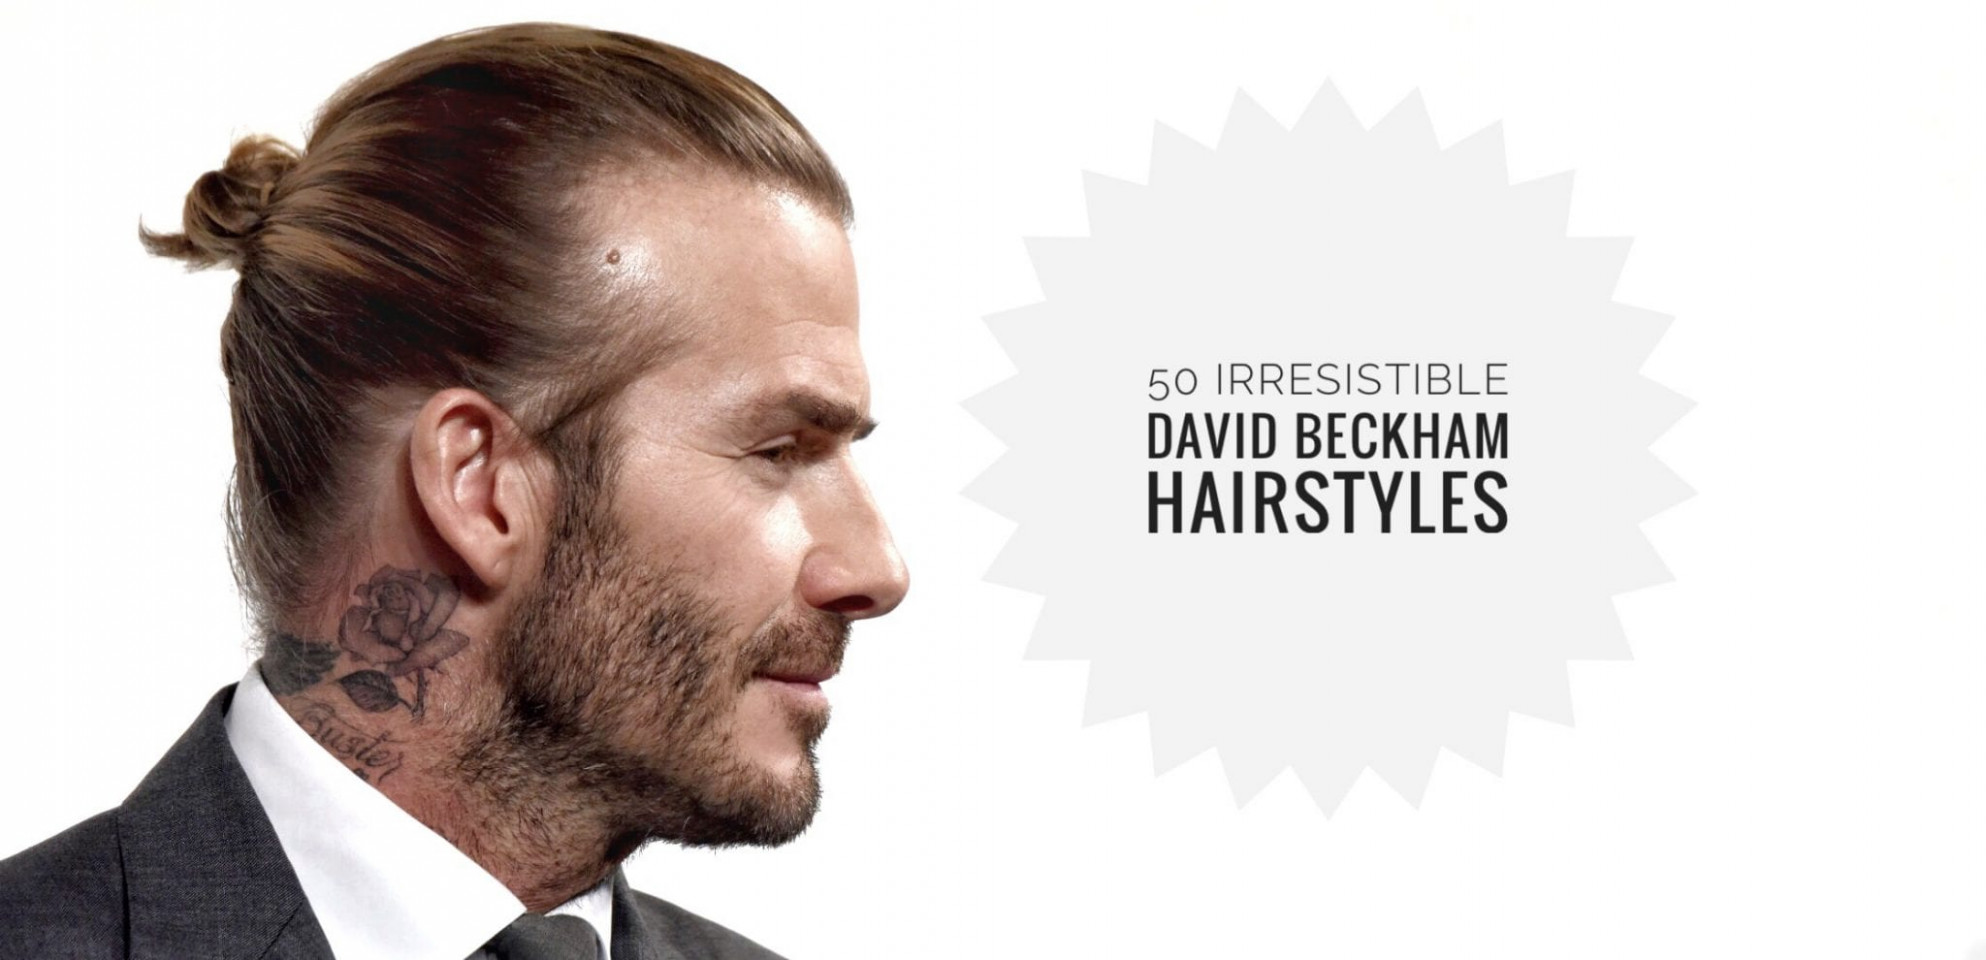 Bend it like beckham or at least cut it like him: 8 hairstyles to